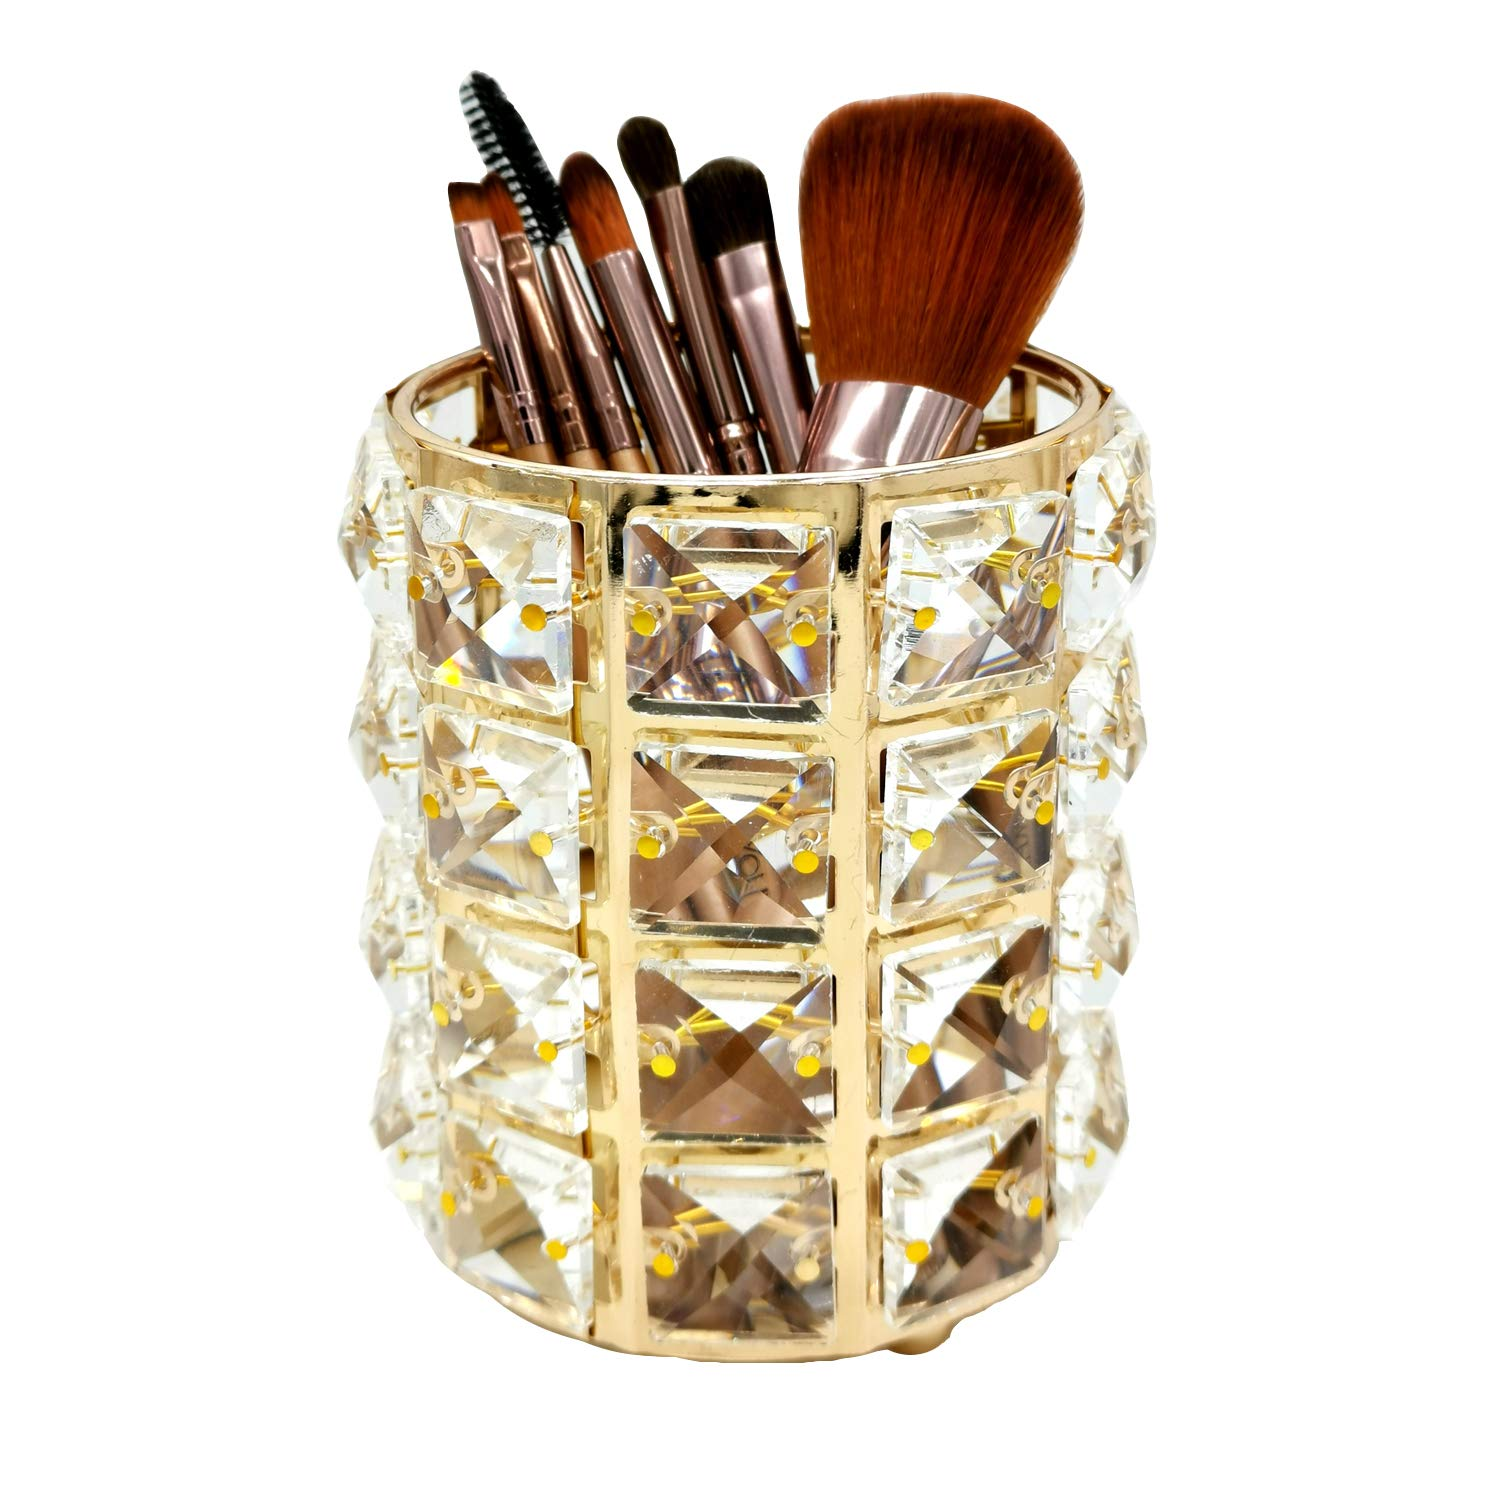 WILTEEXS Makeup Brush Holder Crystal Makeup Organizer Cosmetics Container Storage for Brushes Lipsticks (Gold)